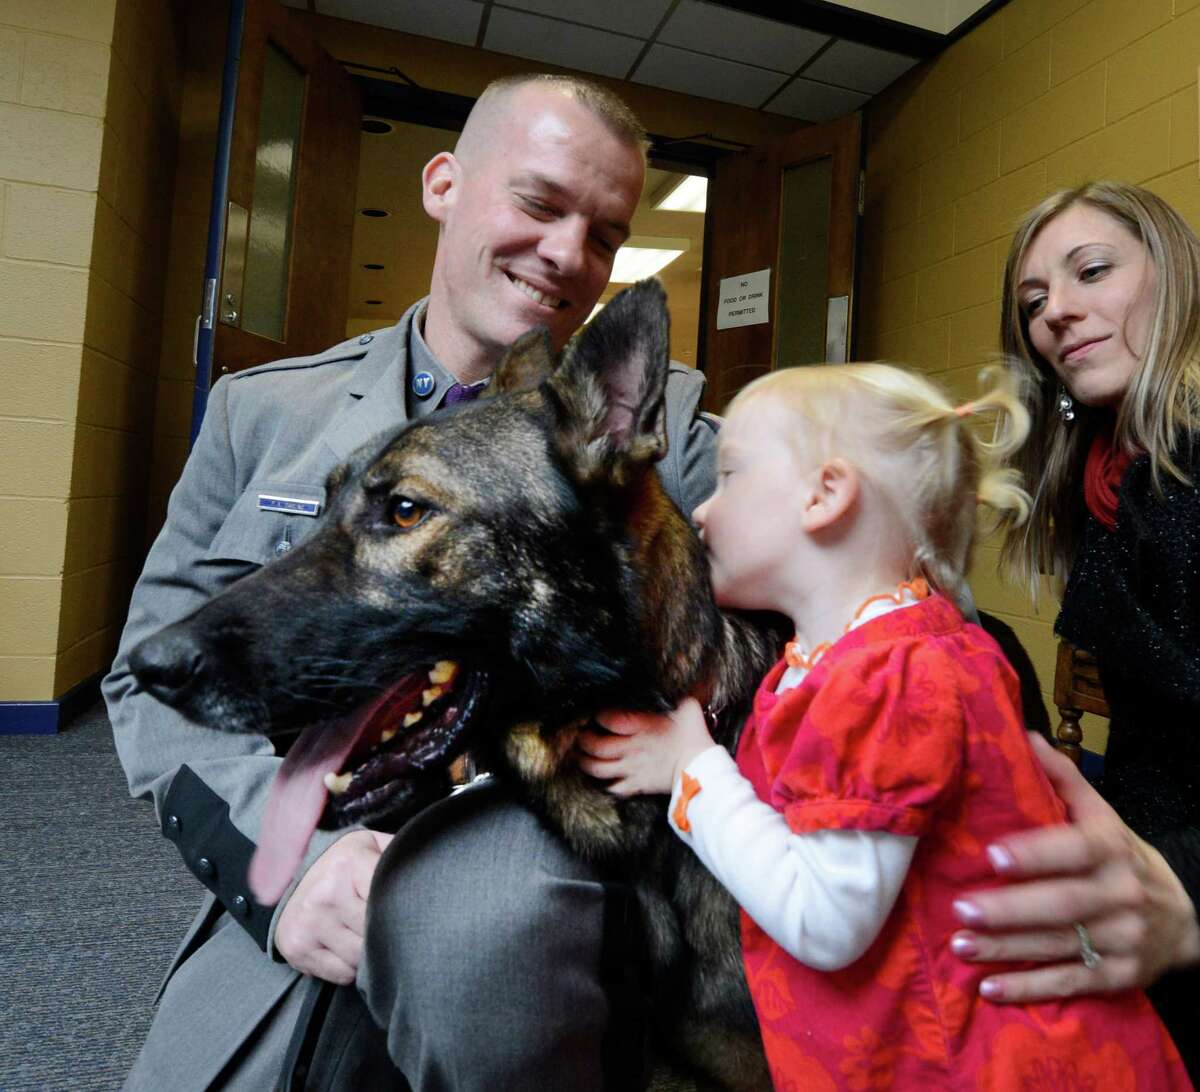 K-9 Trooper Ceer gets a hug from Reese Darling as her father Trooper Patrick Darling, left and her mom Erica Darling look on after the K-9 graduation was held at the State Police Academy in Albany, N.Y. Nov 27, 2012. The K-9 team of Darling and Ceer will be stationed at Troop G in Latham. (Skip Dickstein/Times Union)